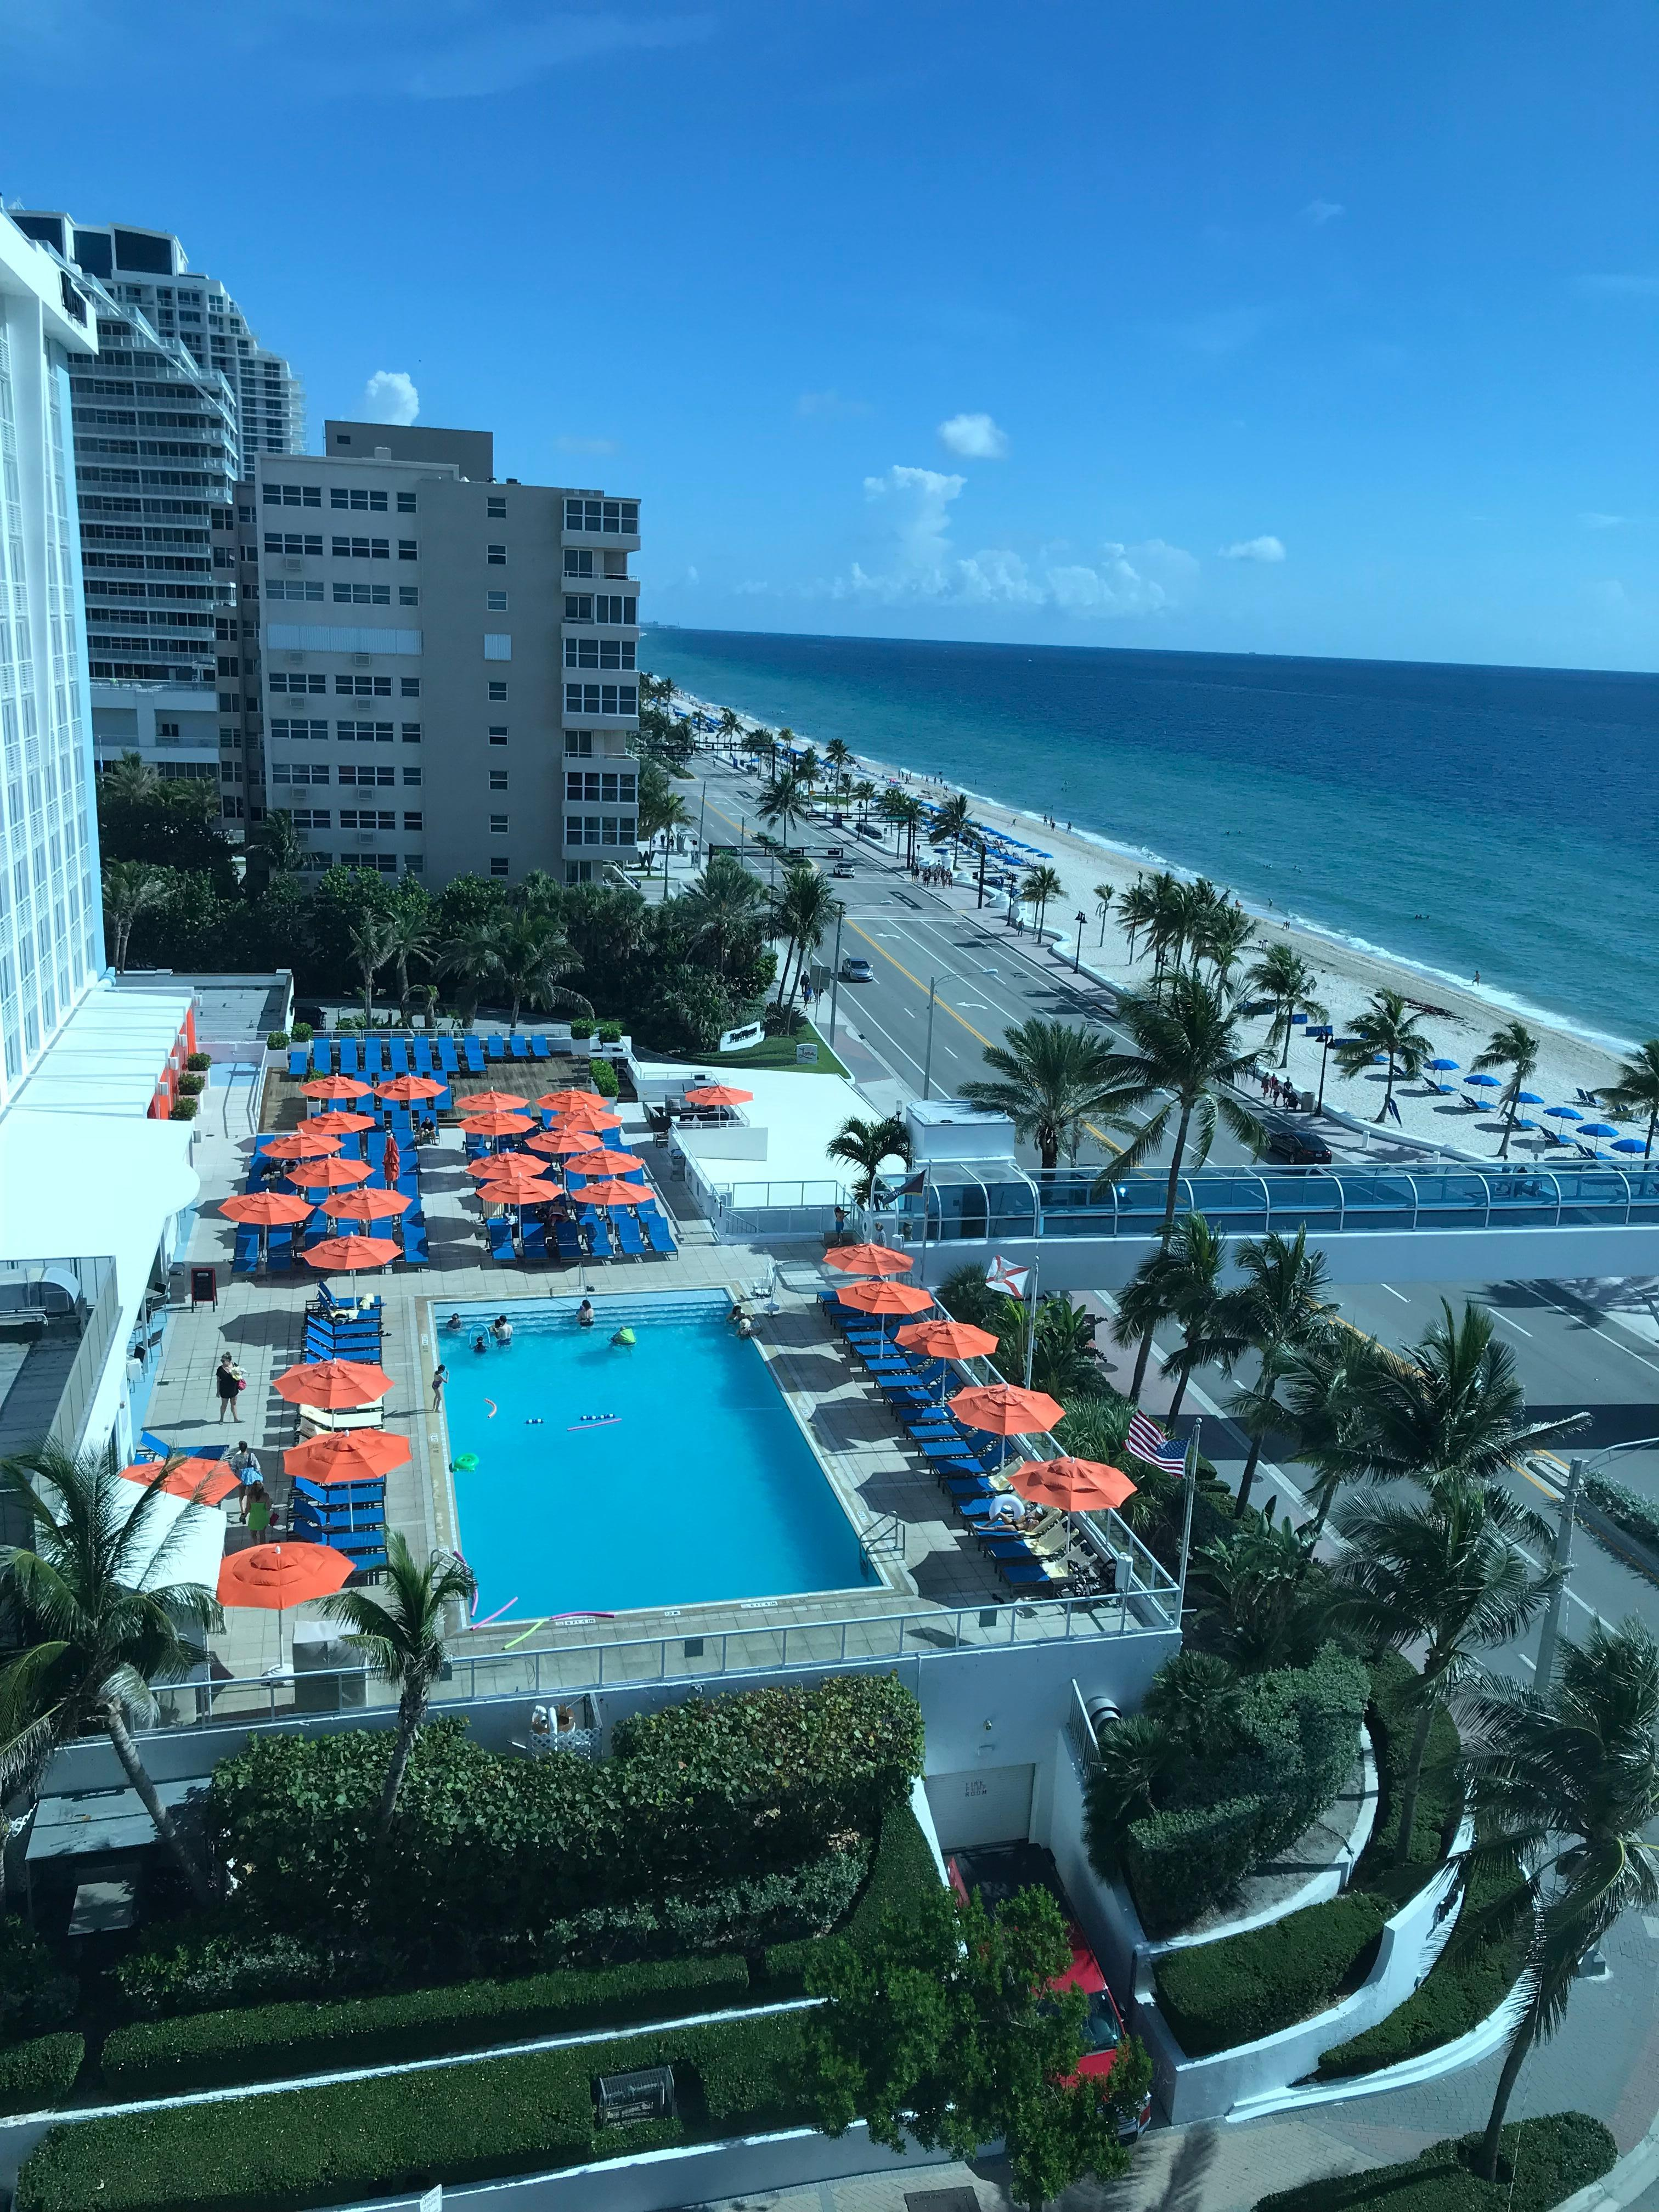 Fort Lauderdale Hotel: Book The Westin Fort Lauderdale Beach Resort